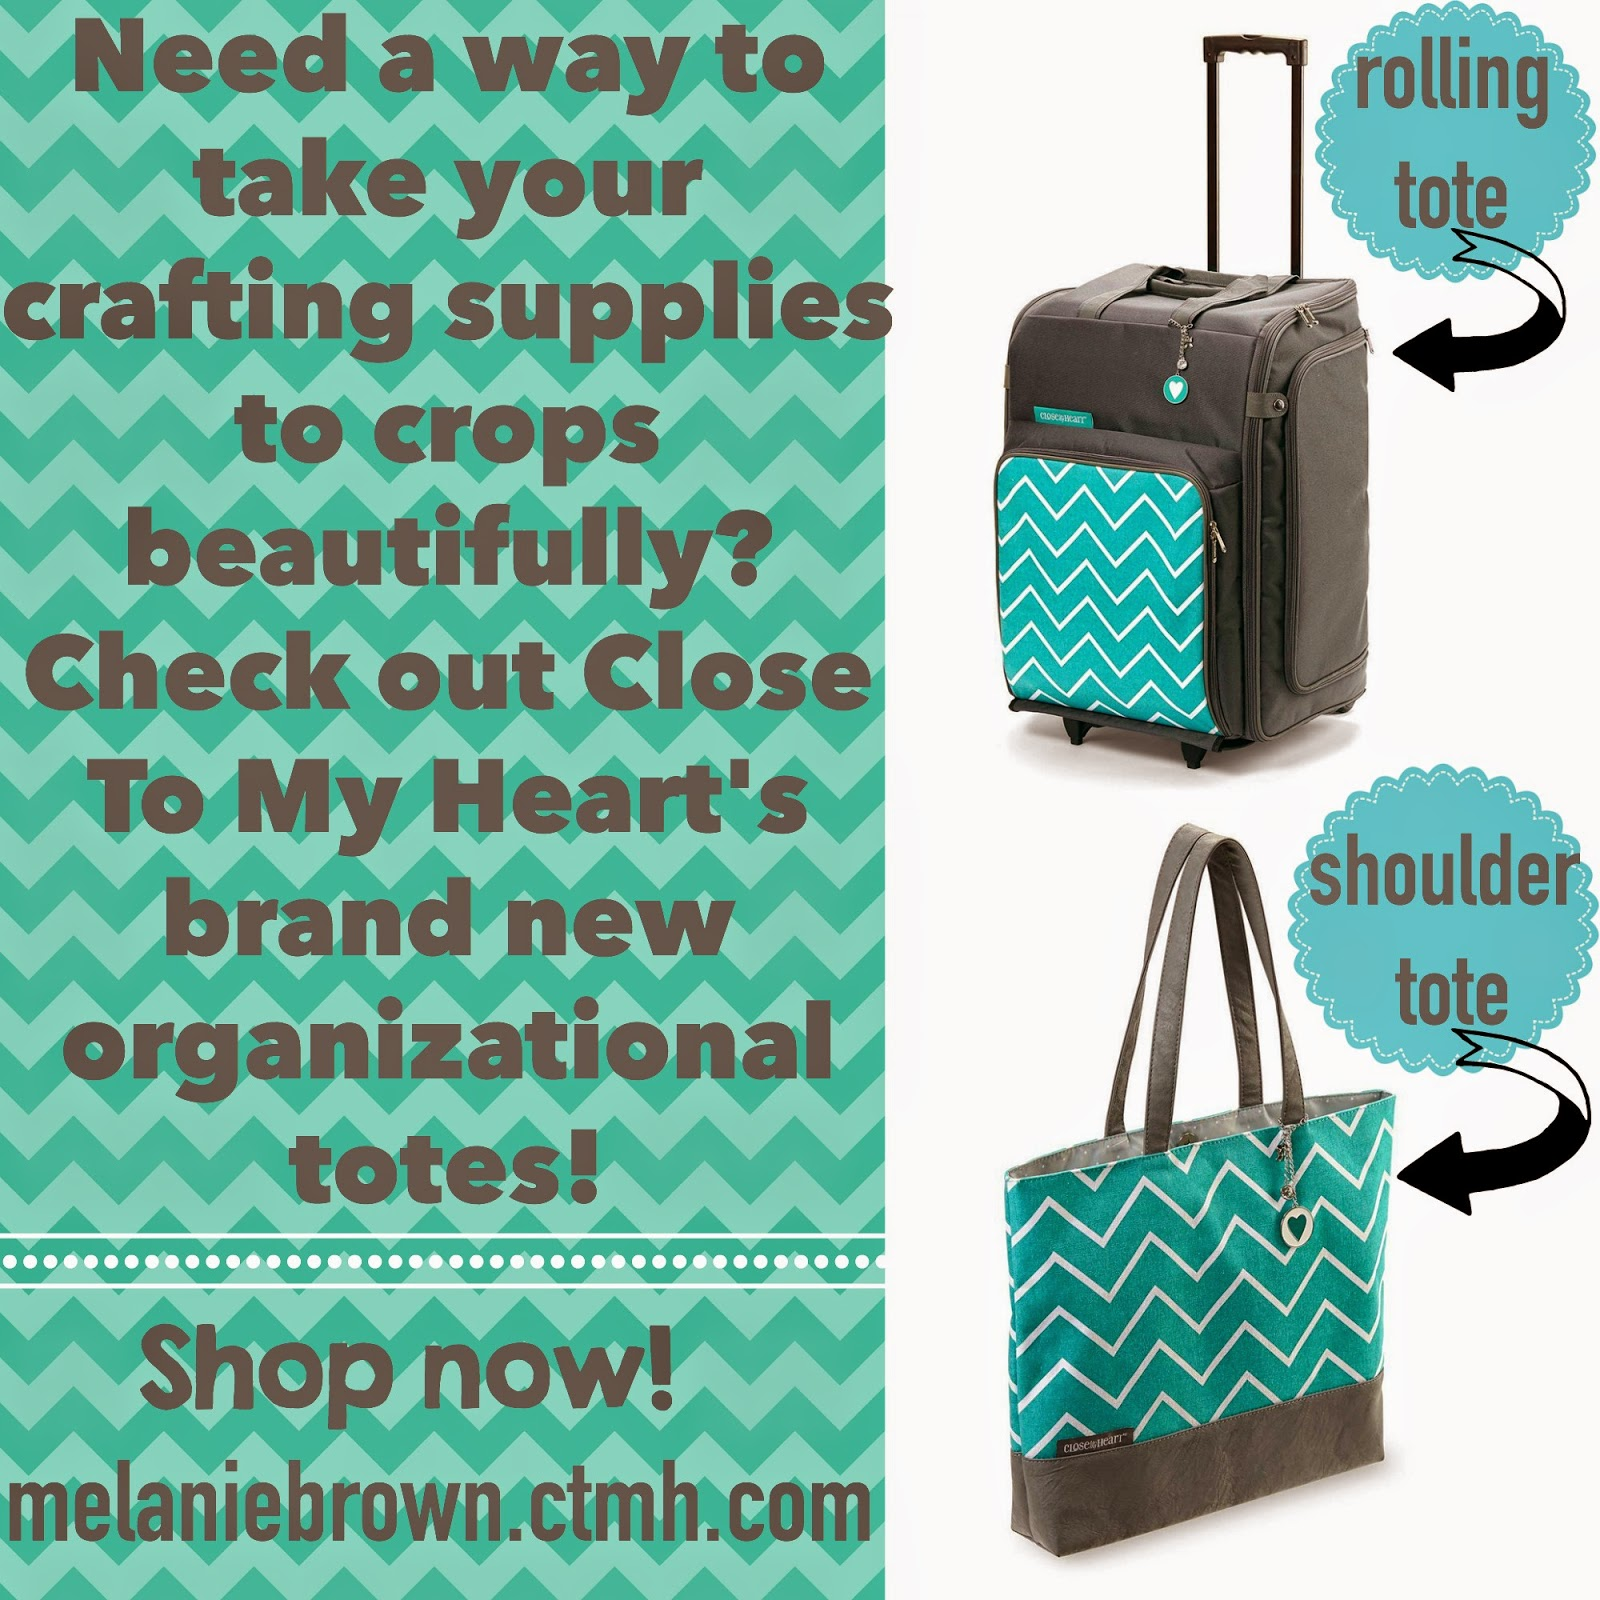 Close To My Heart NEW Rolling and Shoulder totes!